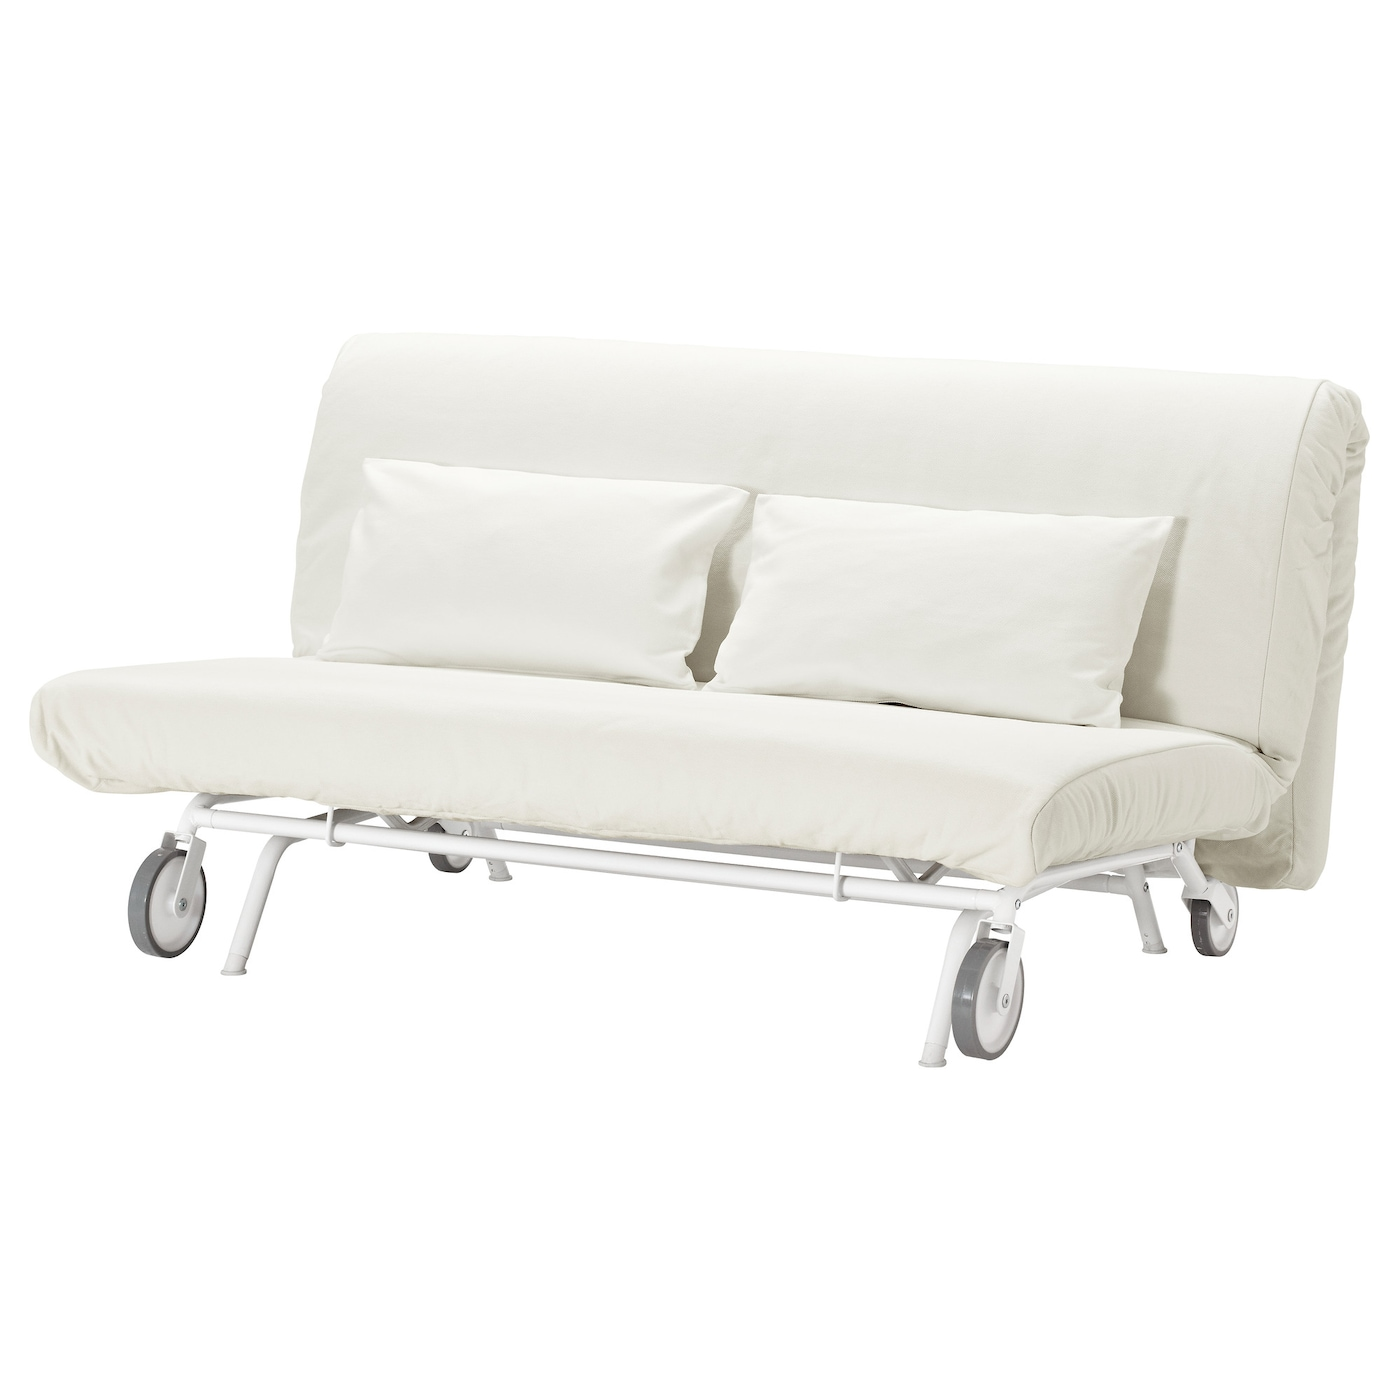 Single Sofa Bed Chair Ikea